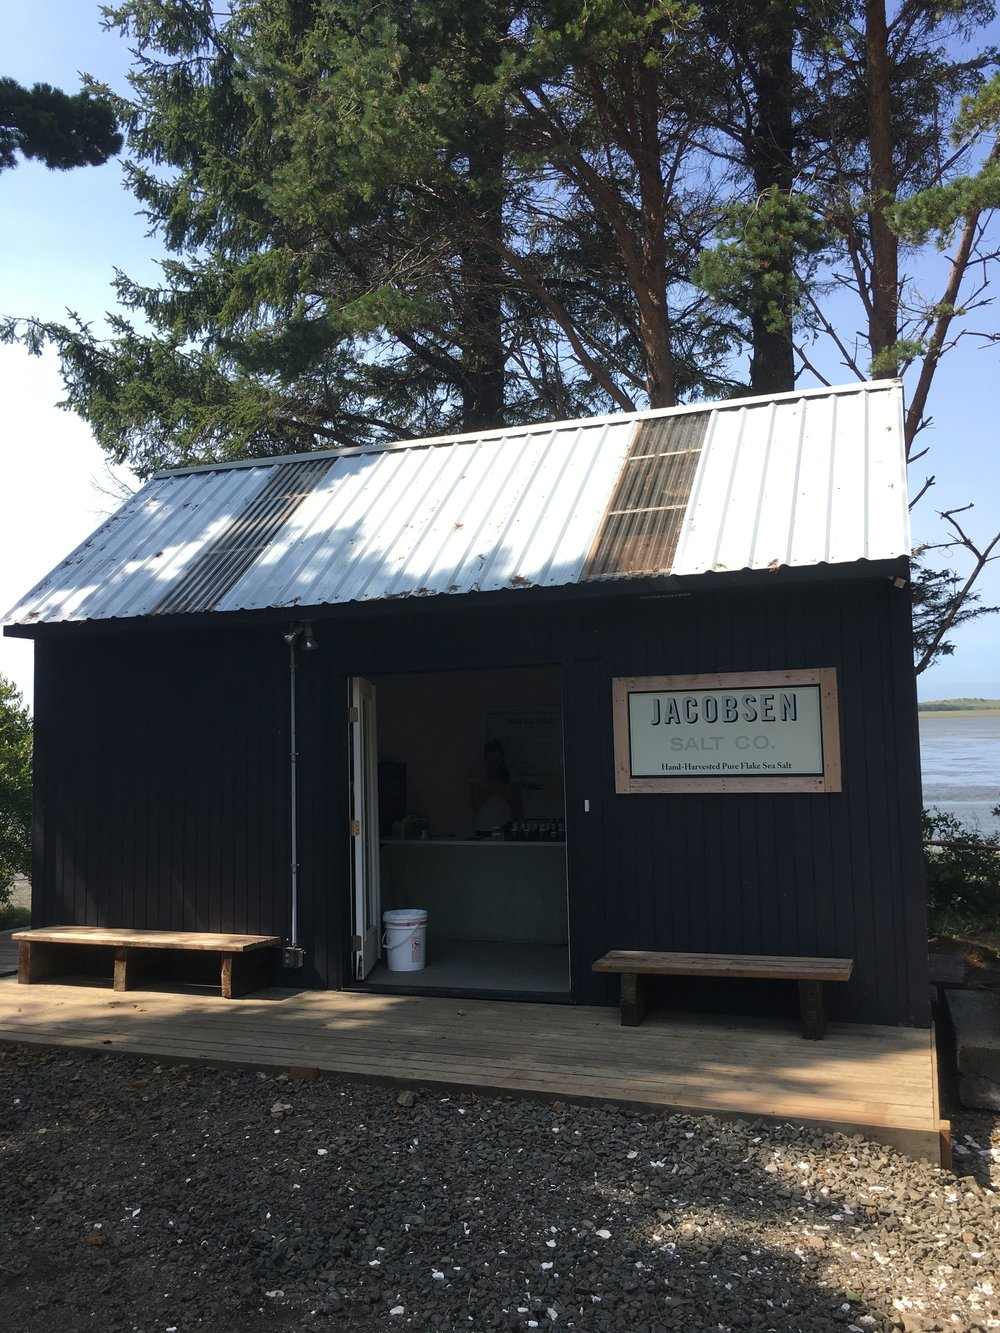 How to Spend Two Perfect Day on the Oregon Coast: Jacobsen Salt Co. in Netarts Bay